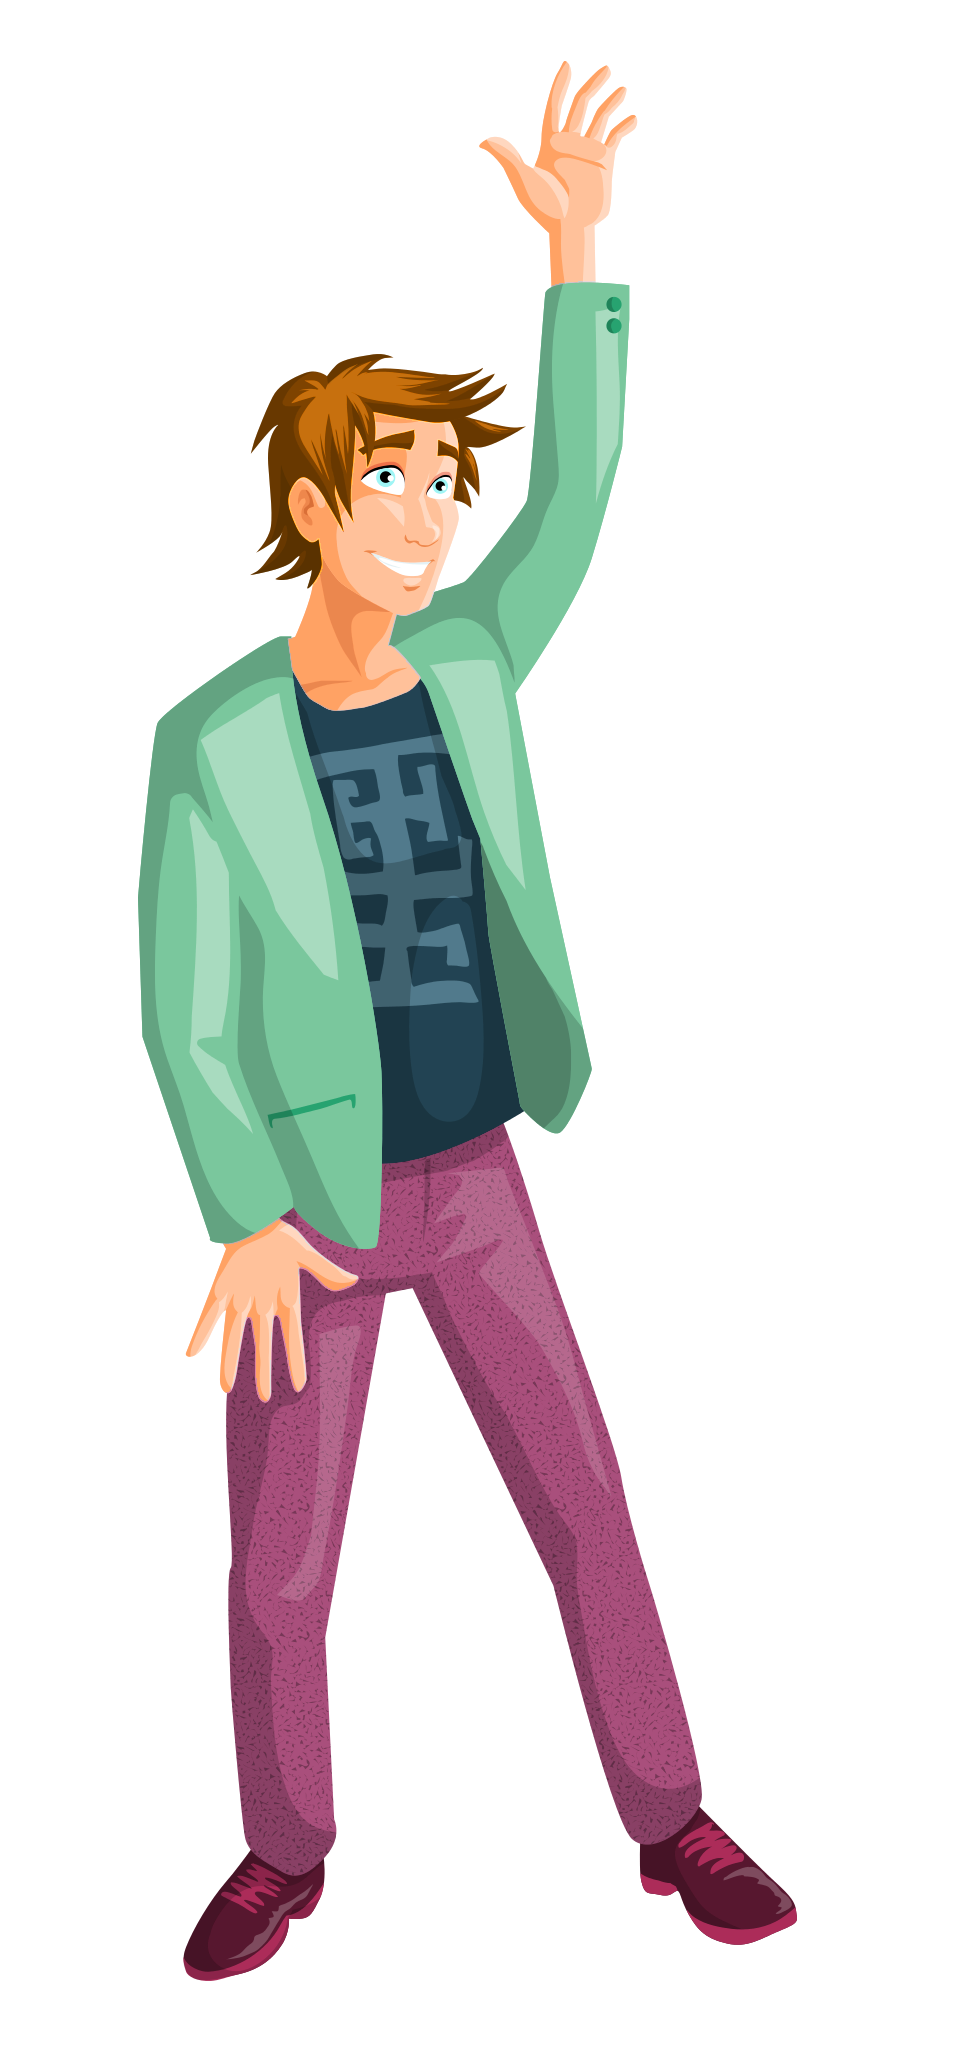 Man Vector PNG Transparent Image.